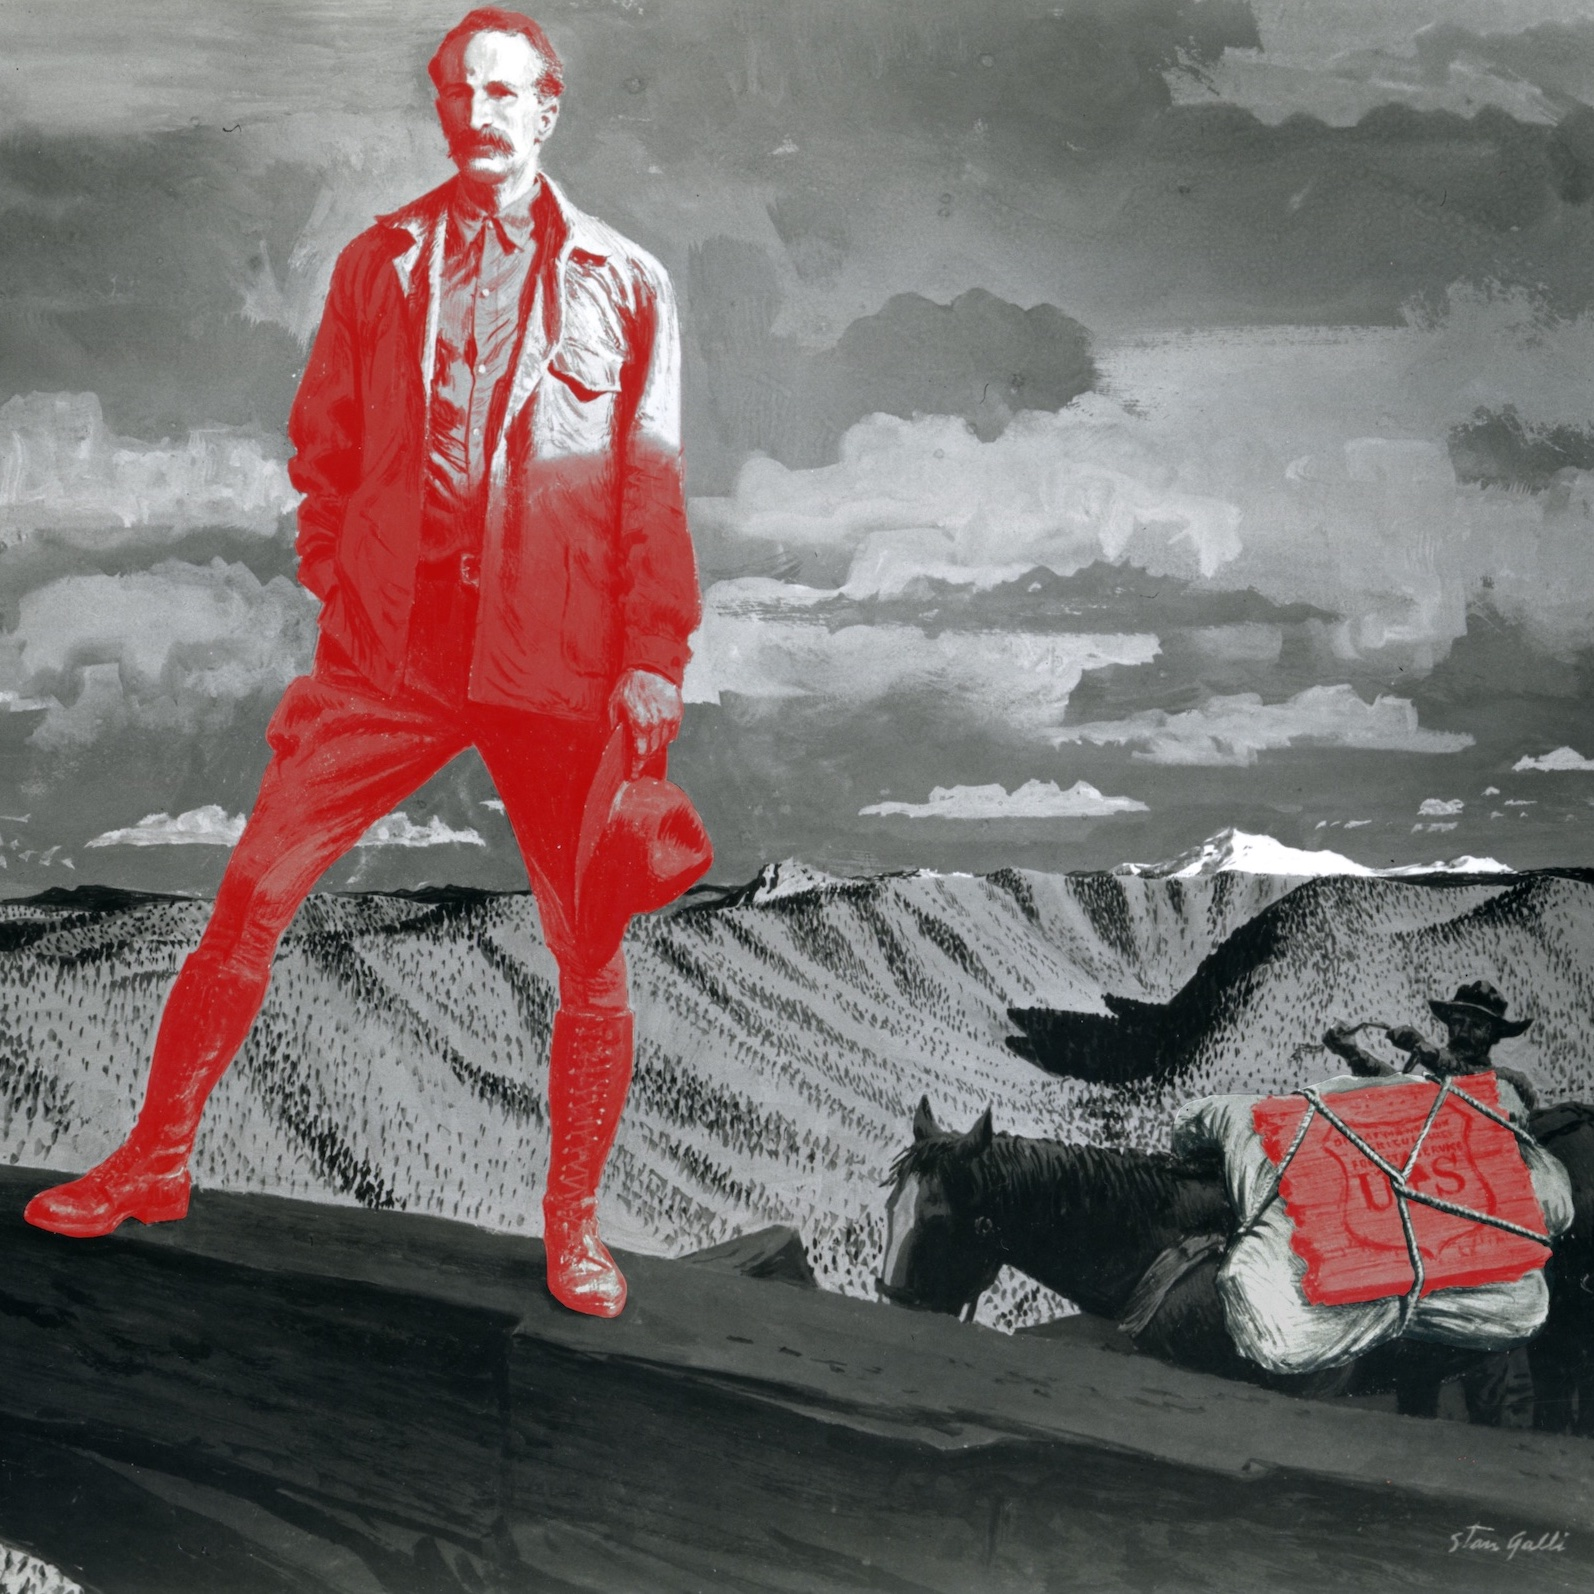 """Season 5 art and image editing by Mara Guevarra. Episode image: Photo of a painting of Gifford Pinchot by artist Stan Galli, 1955, with image editing by Mara Guevarra. The painting was commissioned by the Weyerhauser Timber Company for an ad campaign promoting """"productive"""" forest management. Image courtesy of the Forest History Society, Durham, North Carolina."""